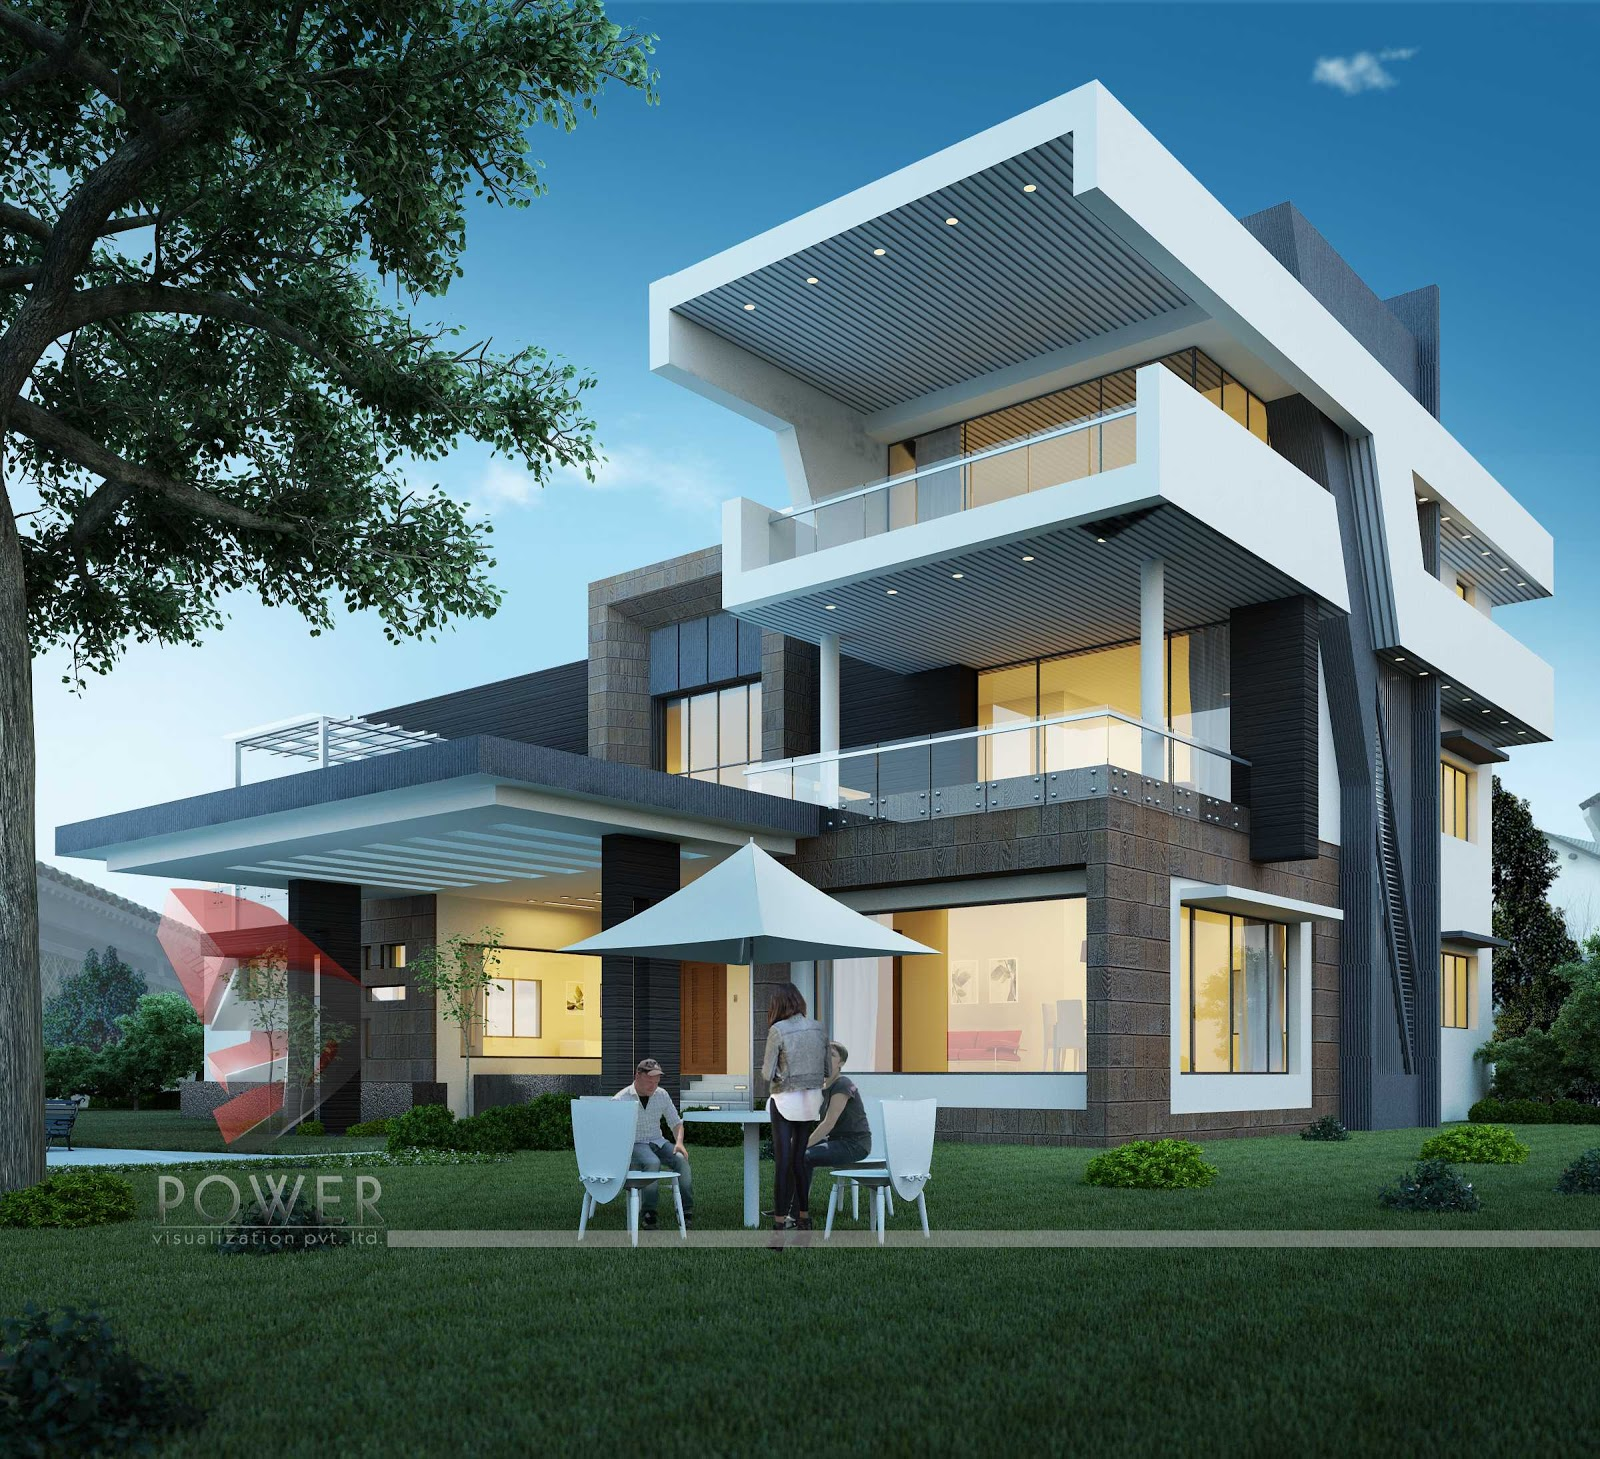 Ultra modern home designs home designs october 2012 for Modern home design plans